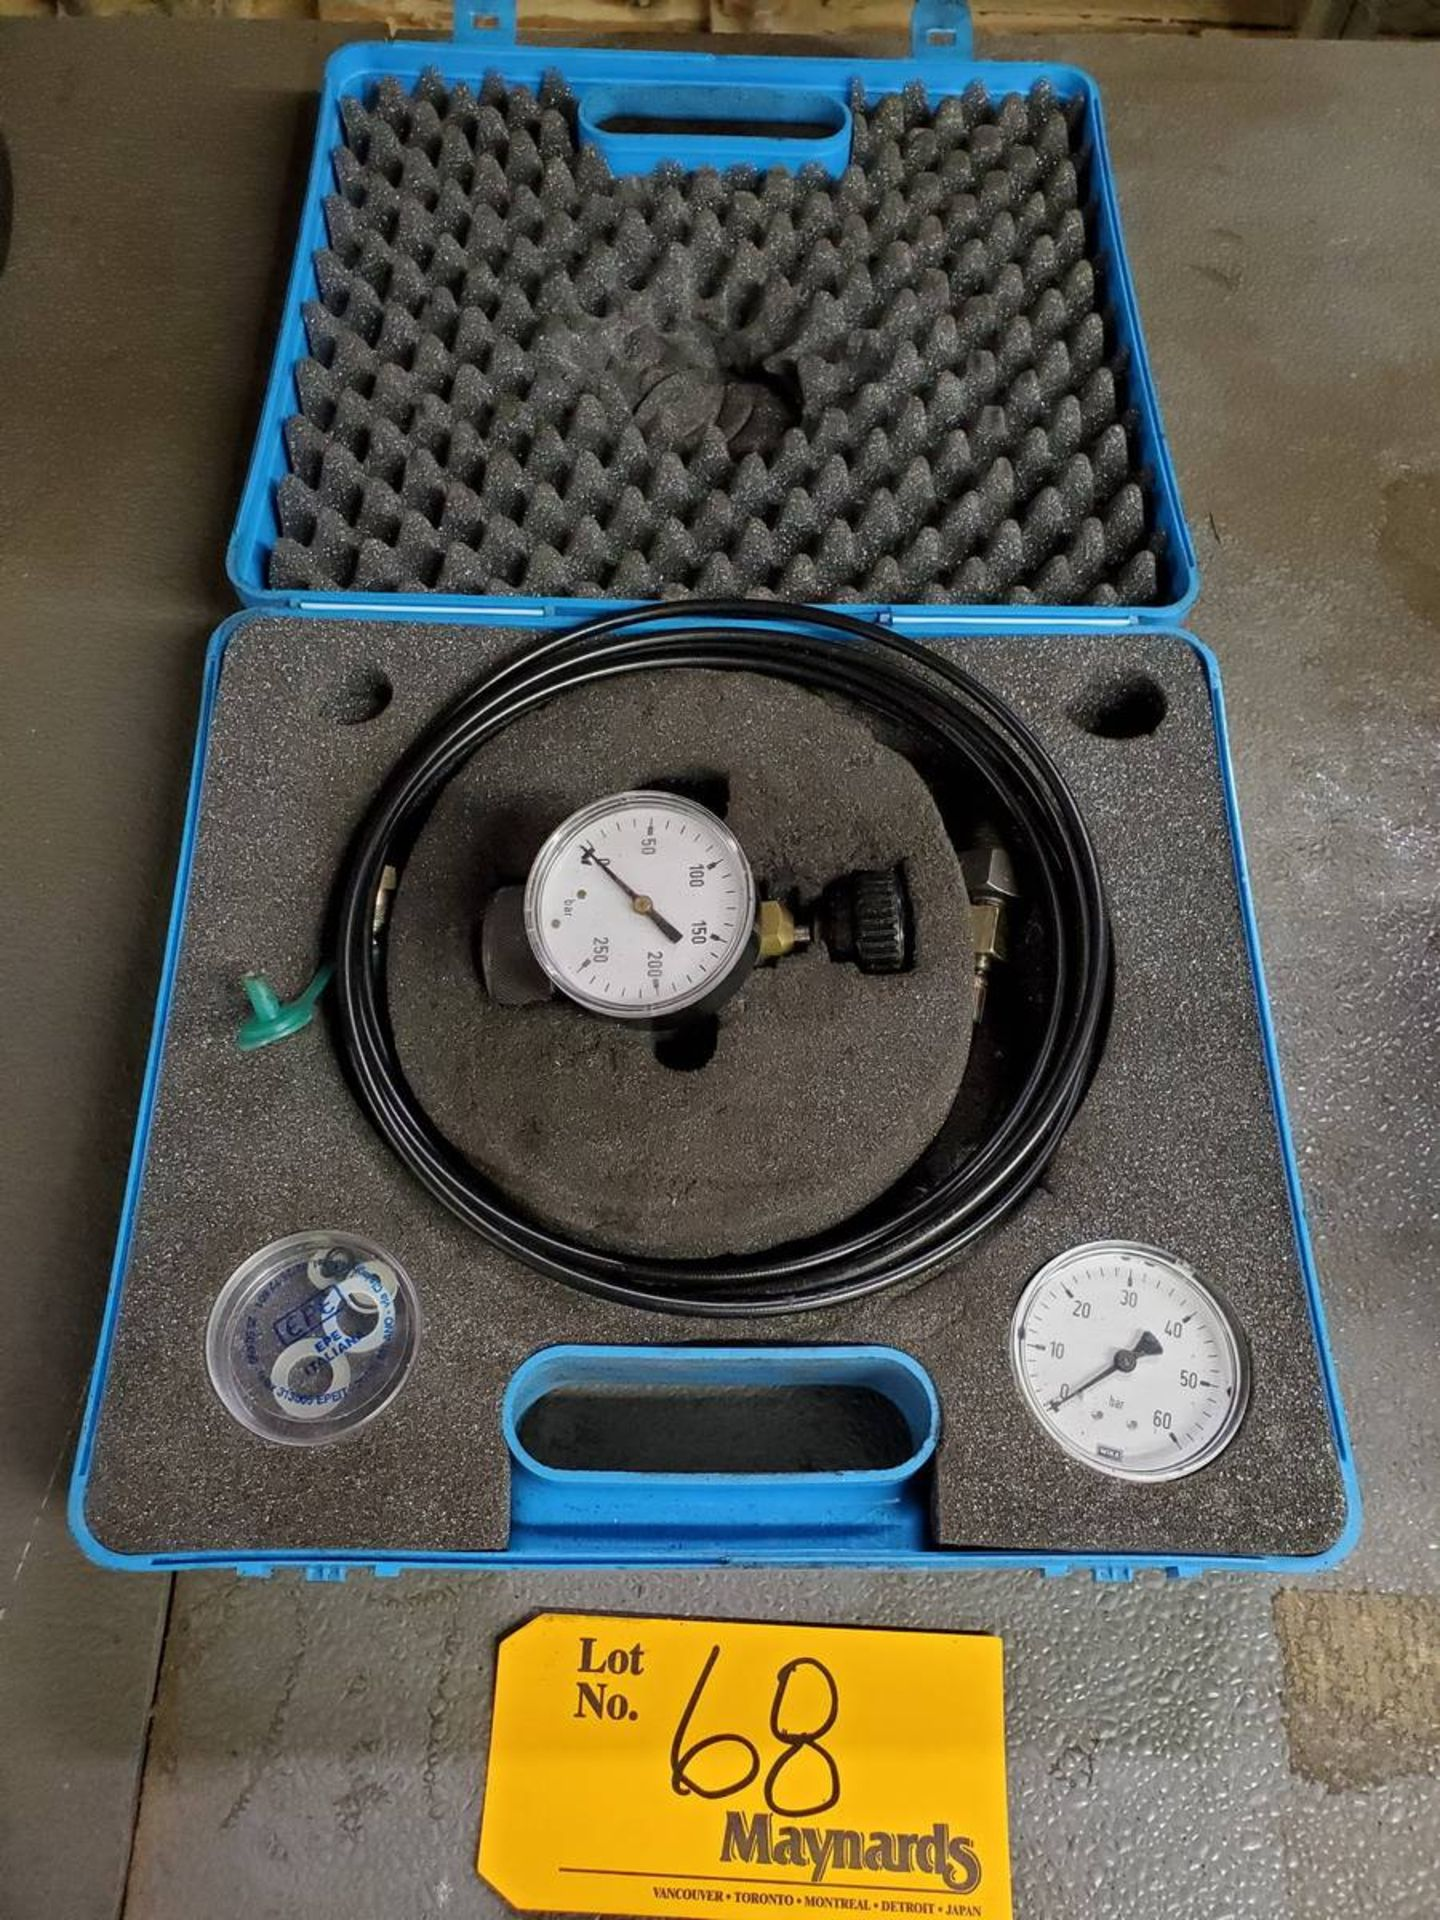 Lot 68 - EPE PC250 Nitrogen Pre-Fill Valve Set